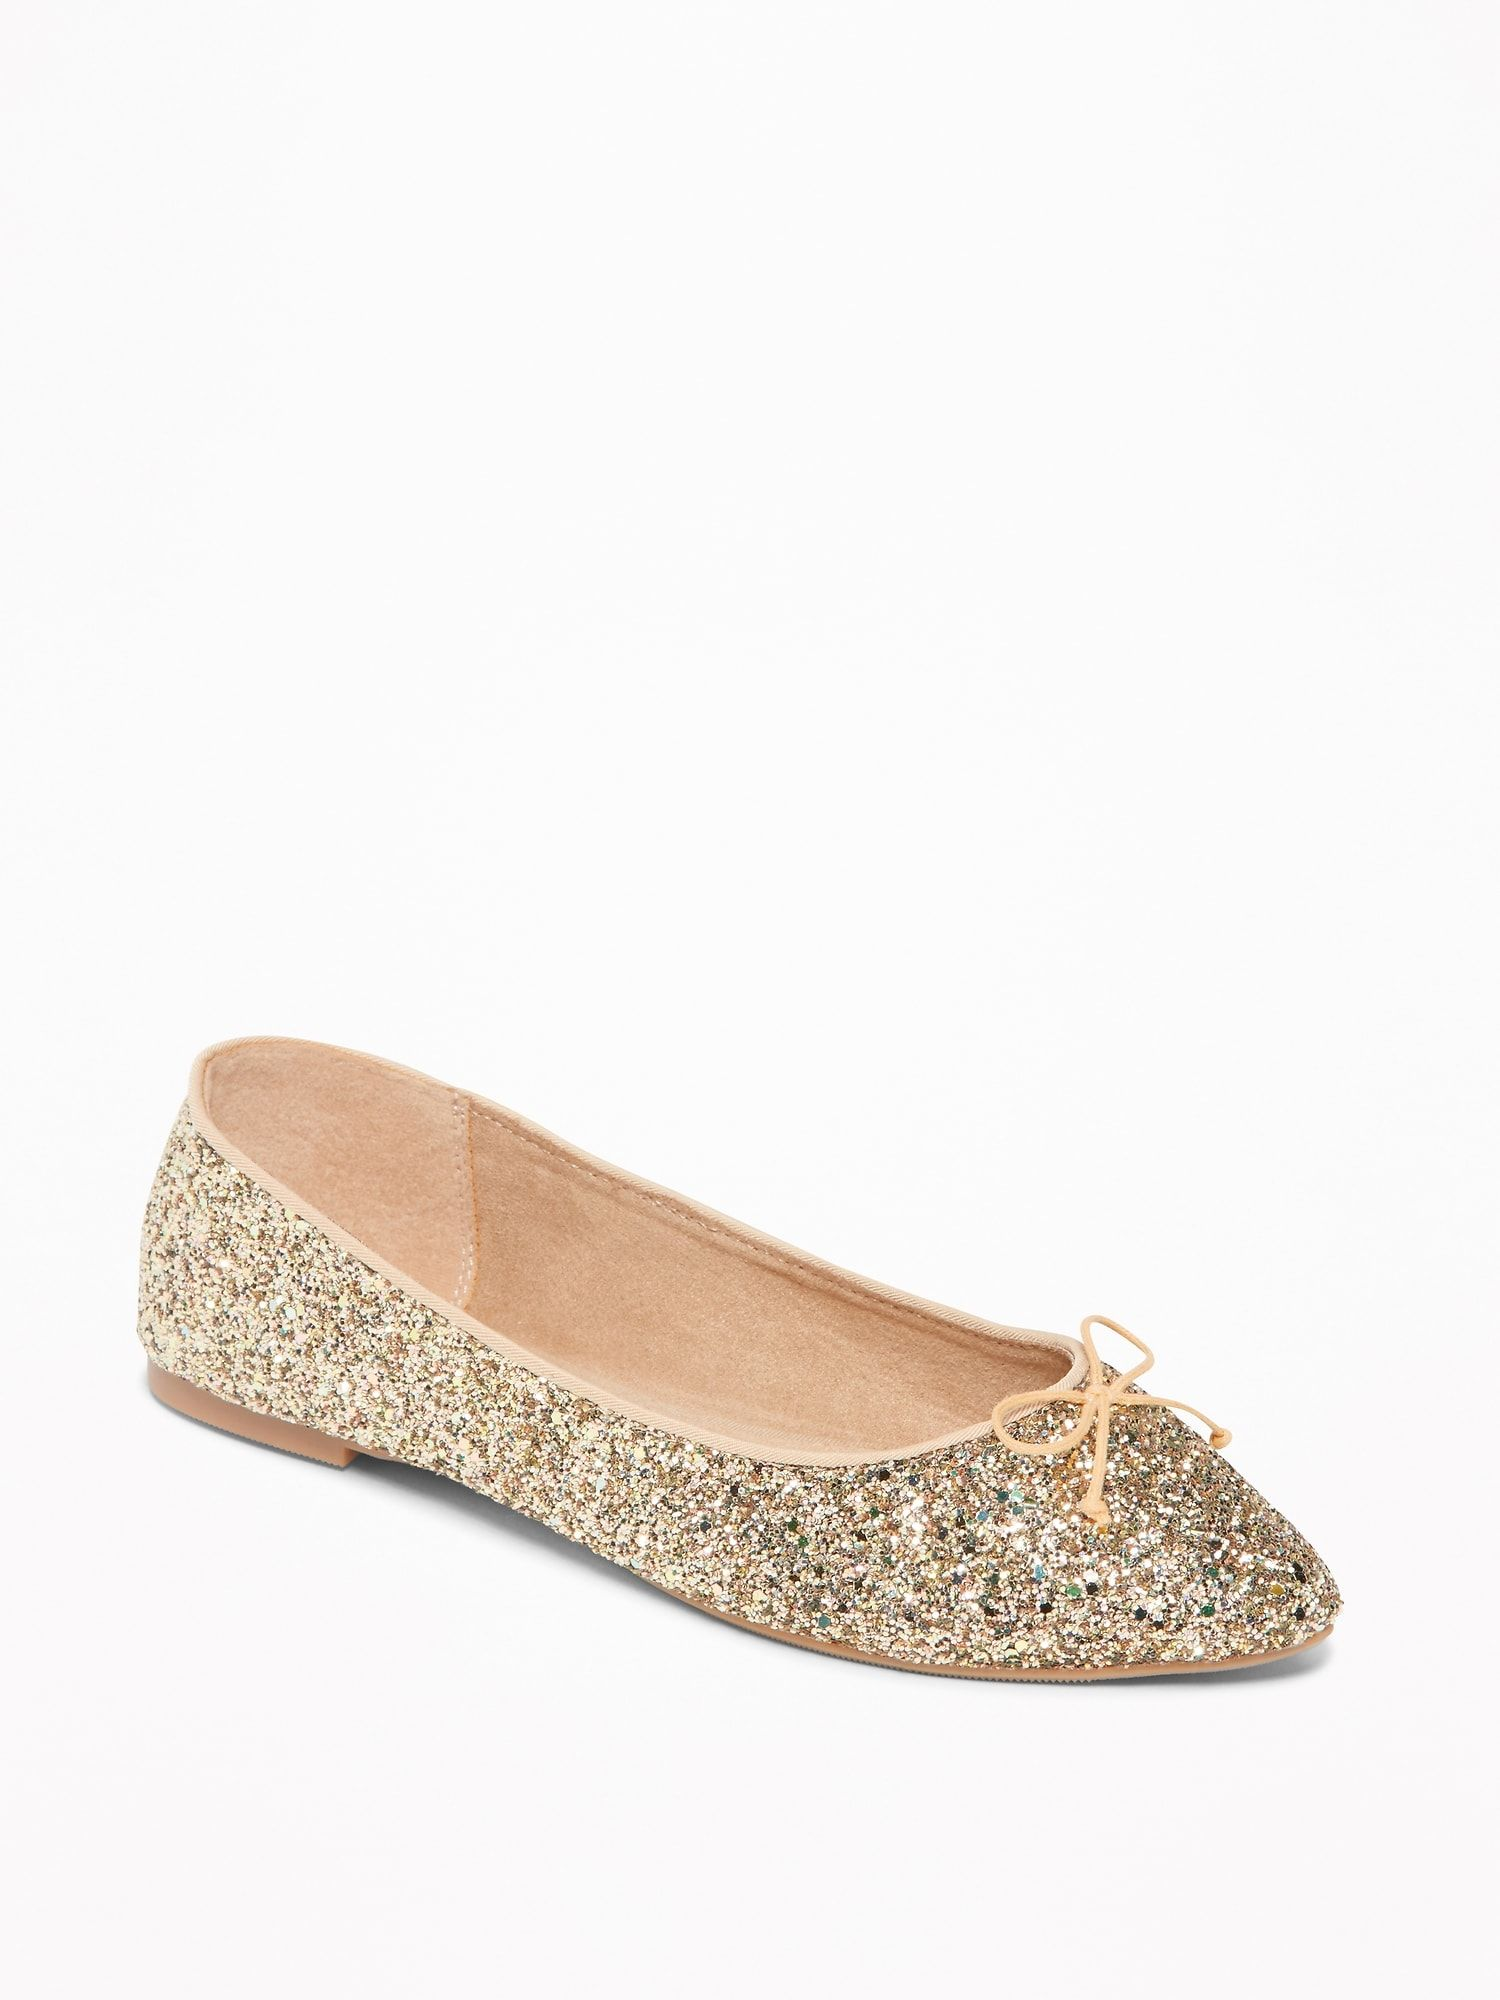 dca2a031609 Love these shoes from Old Navy! I mean… their glitter! So cute and comfy. I  can dress them up or down! Love to use them to sparkle up a casual outfit.